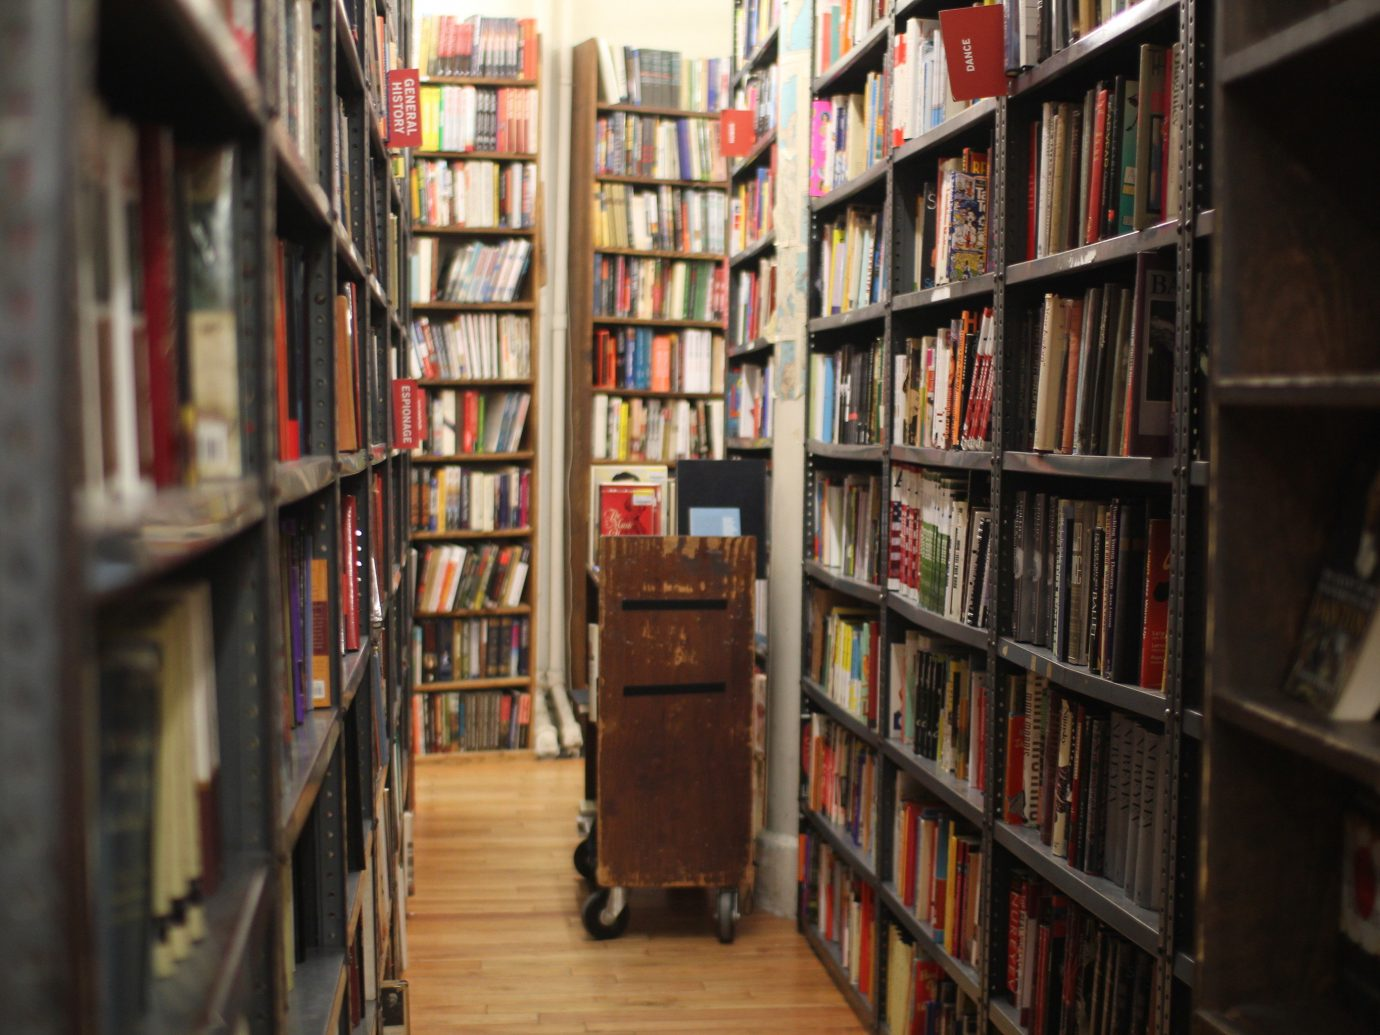 Offbeat shelf book indoor library scene bookselling room building Living full case public library Shop